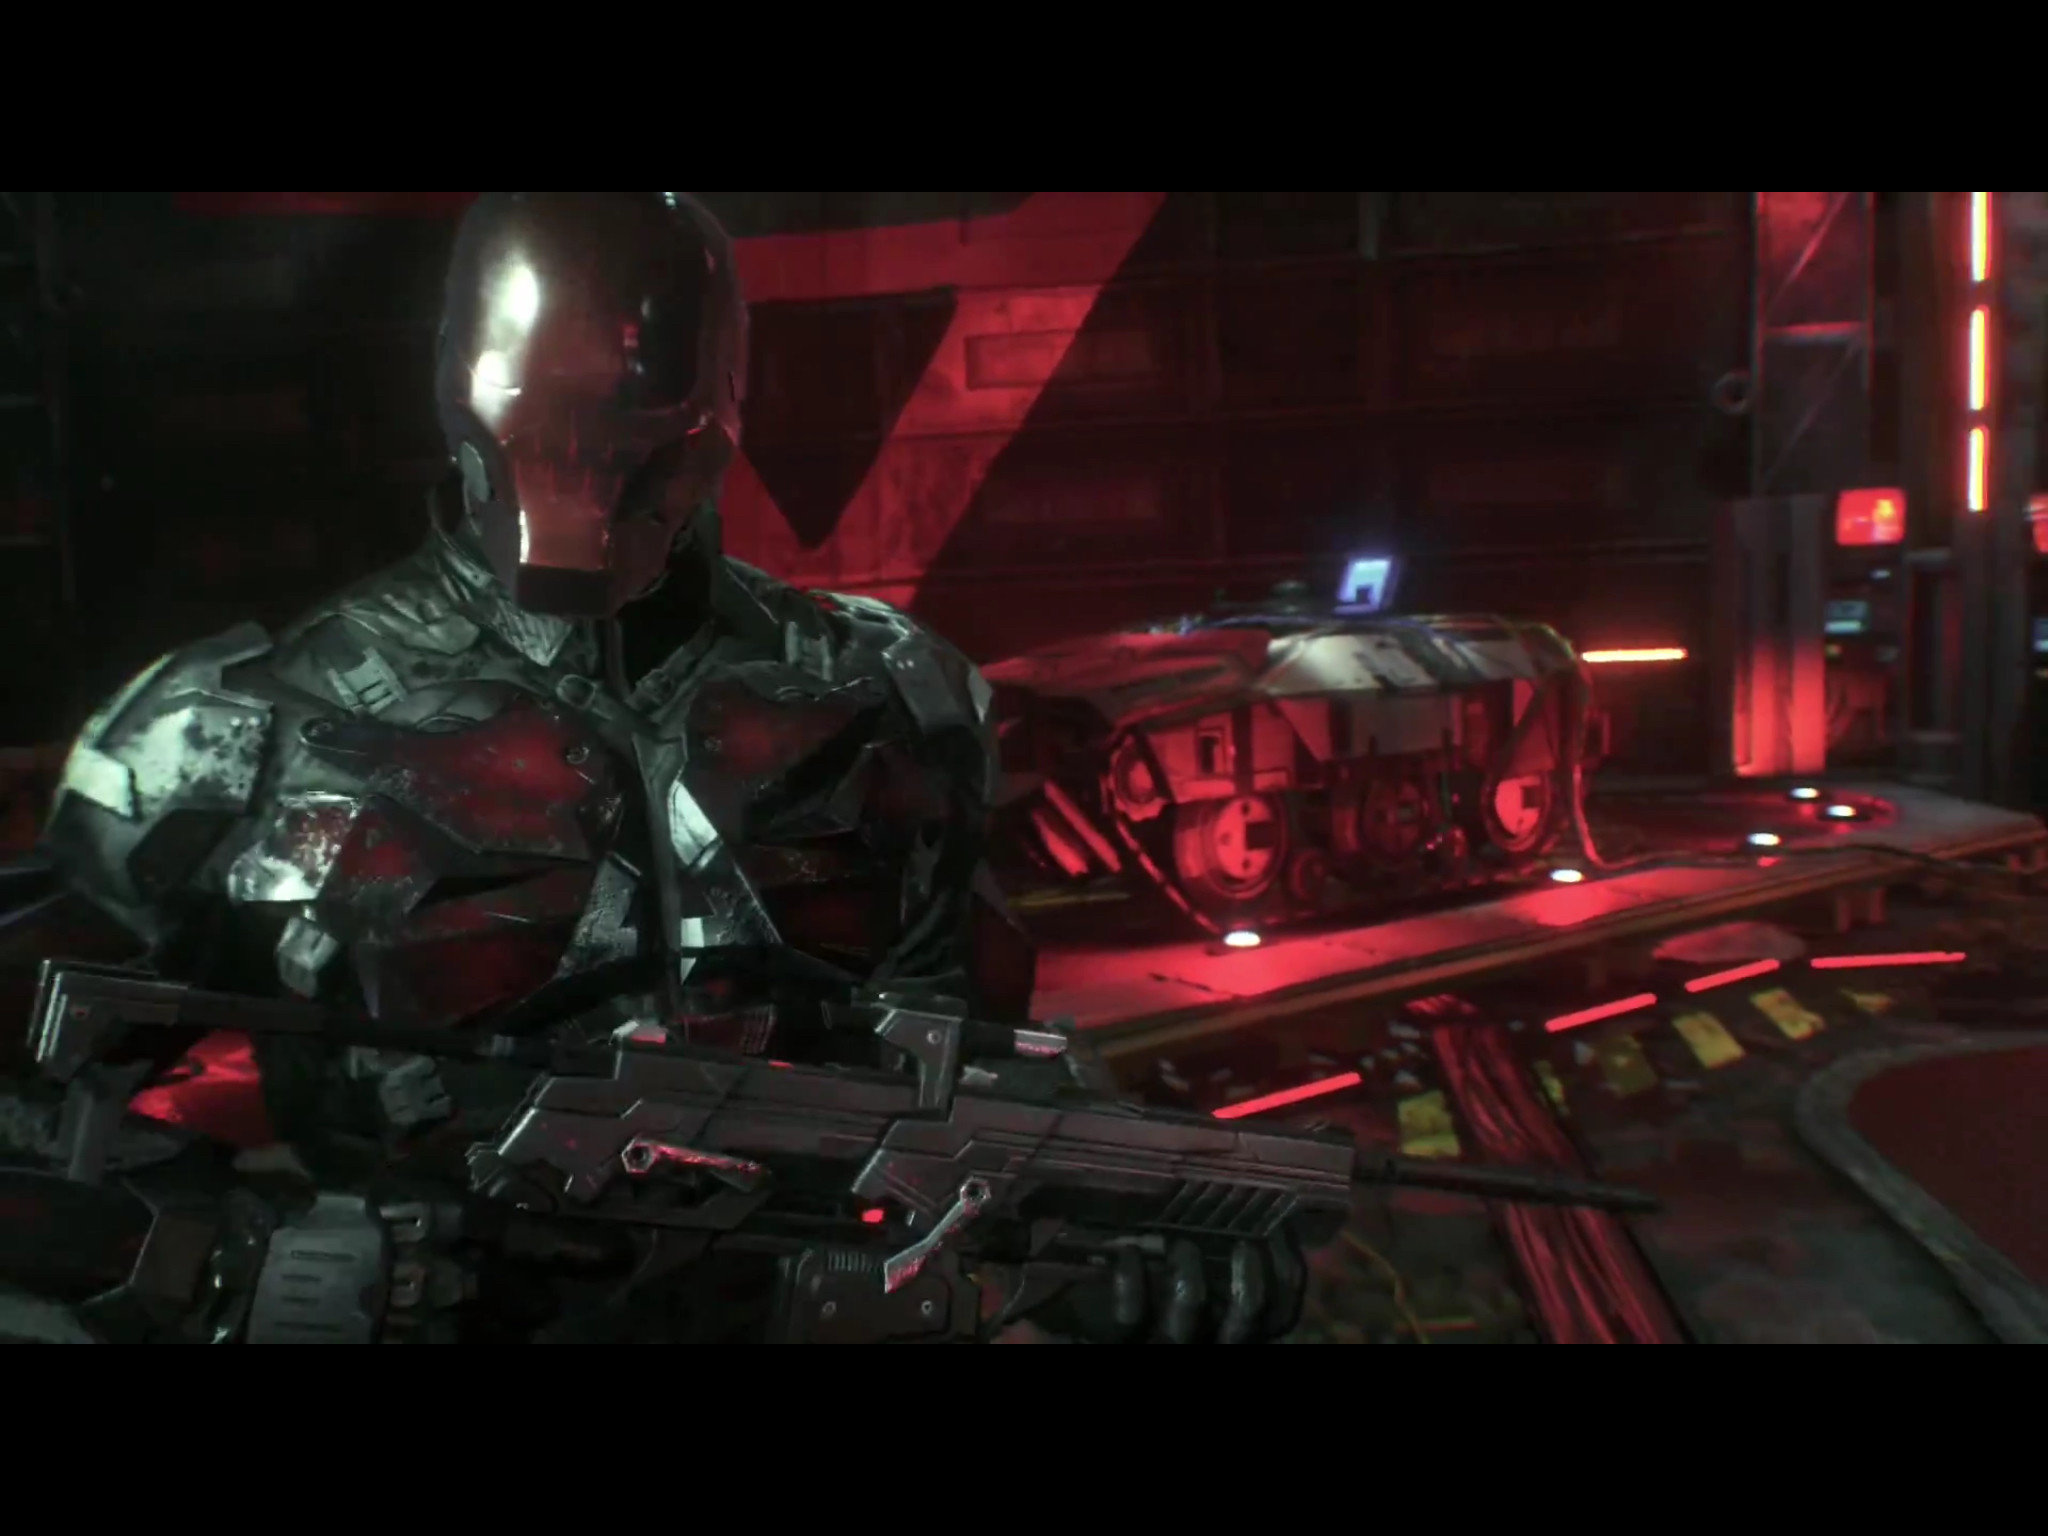 Red hood, Jason Todd. My favorite part of the Arkham Knight reveal is when